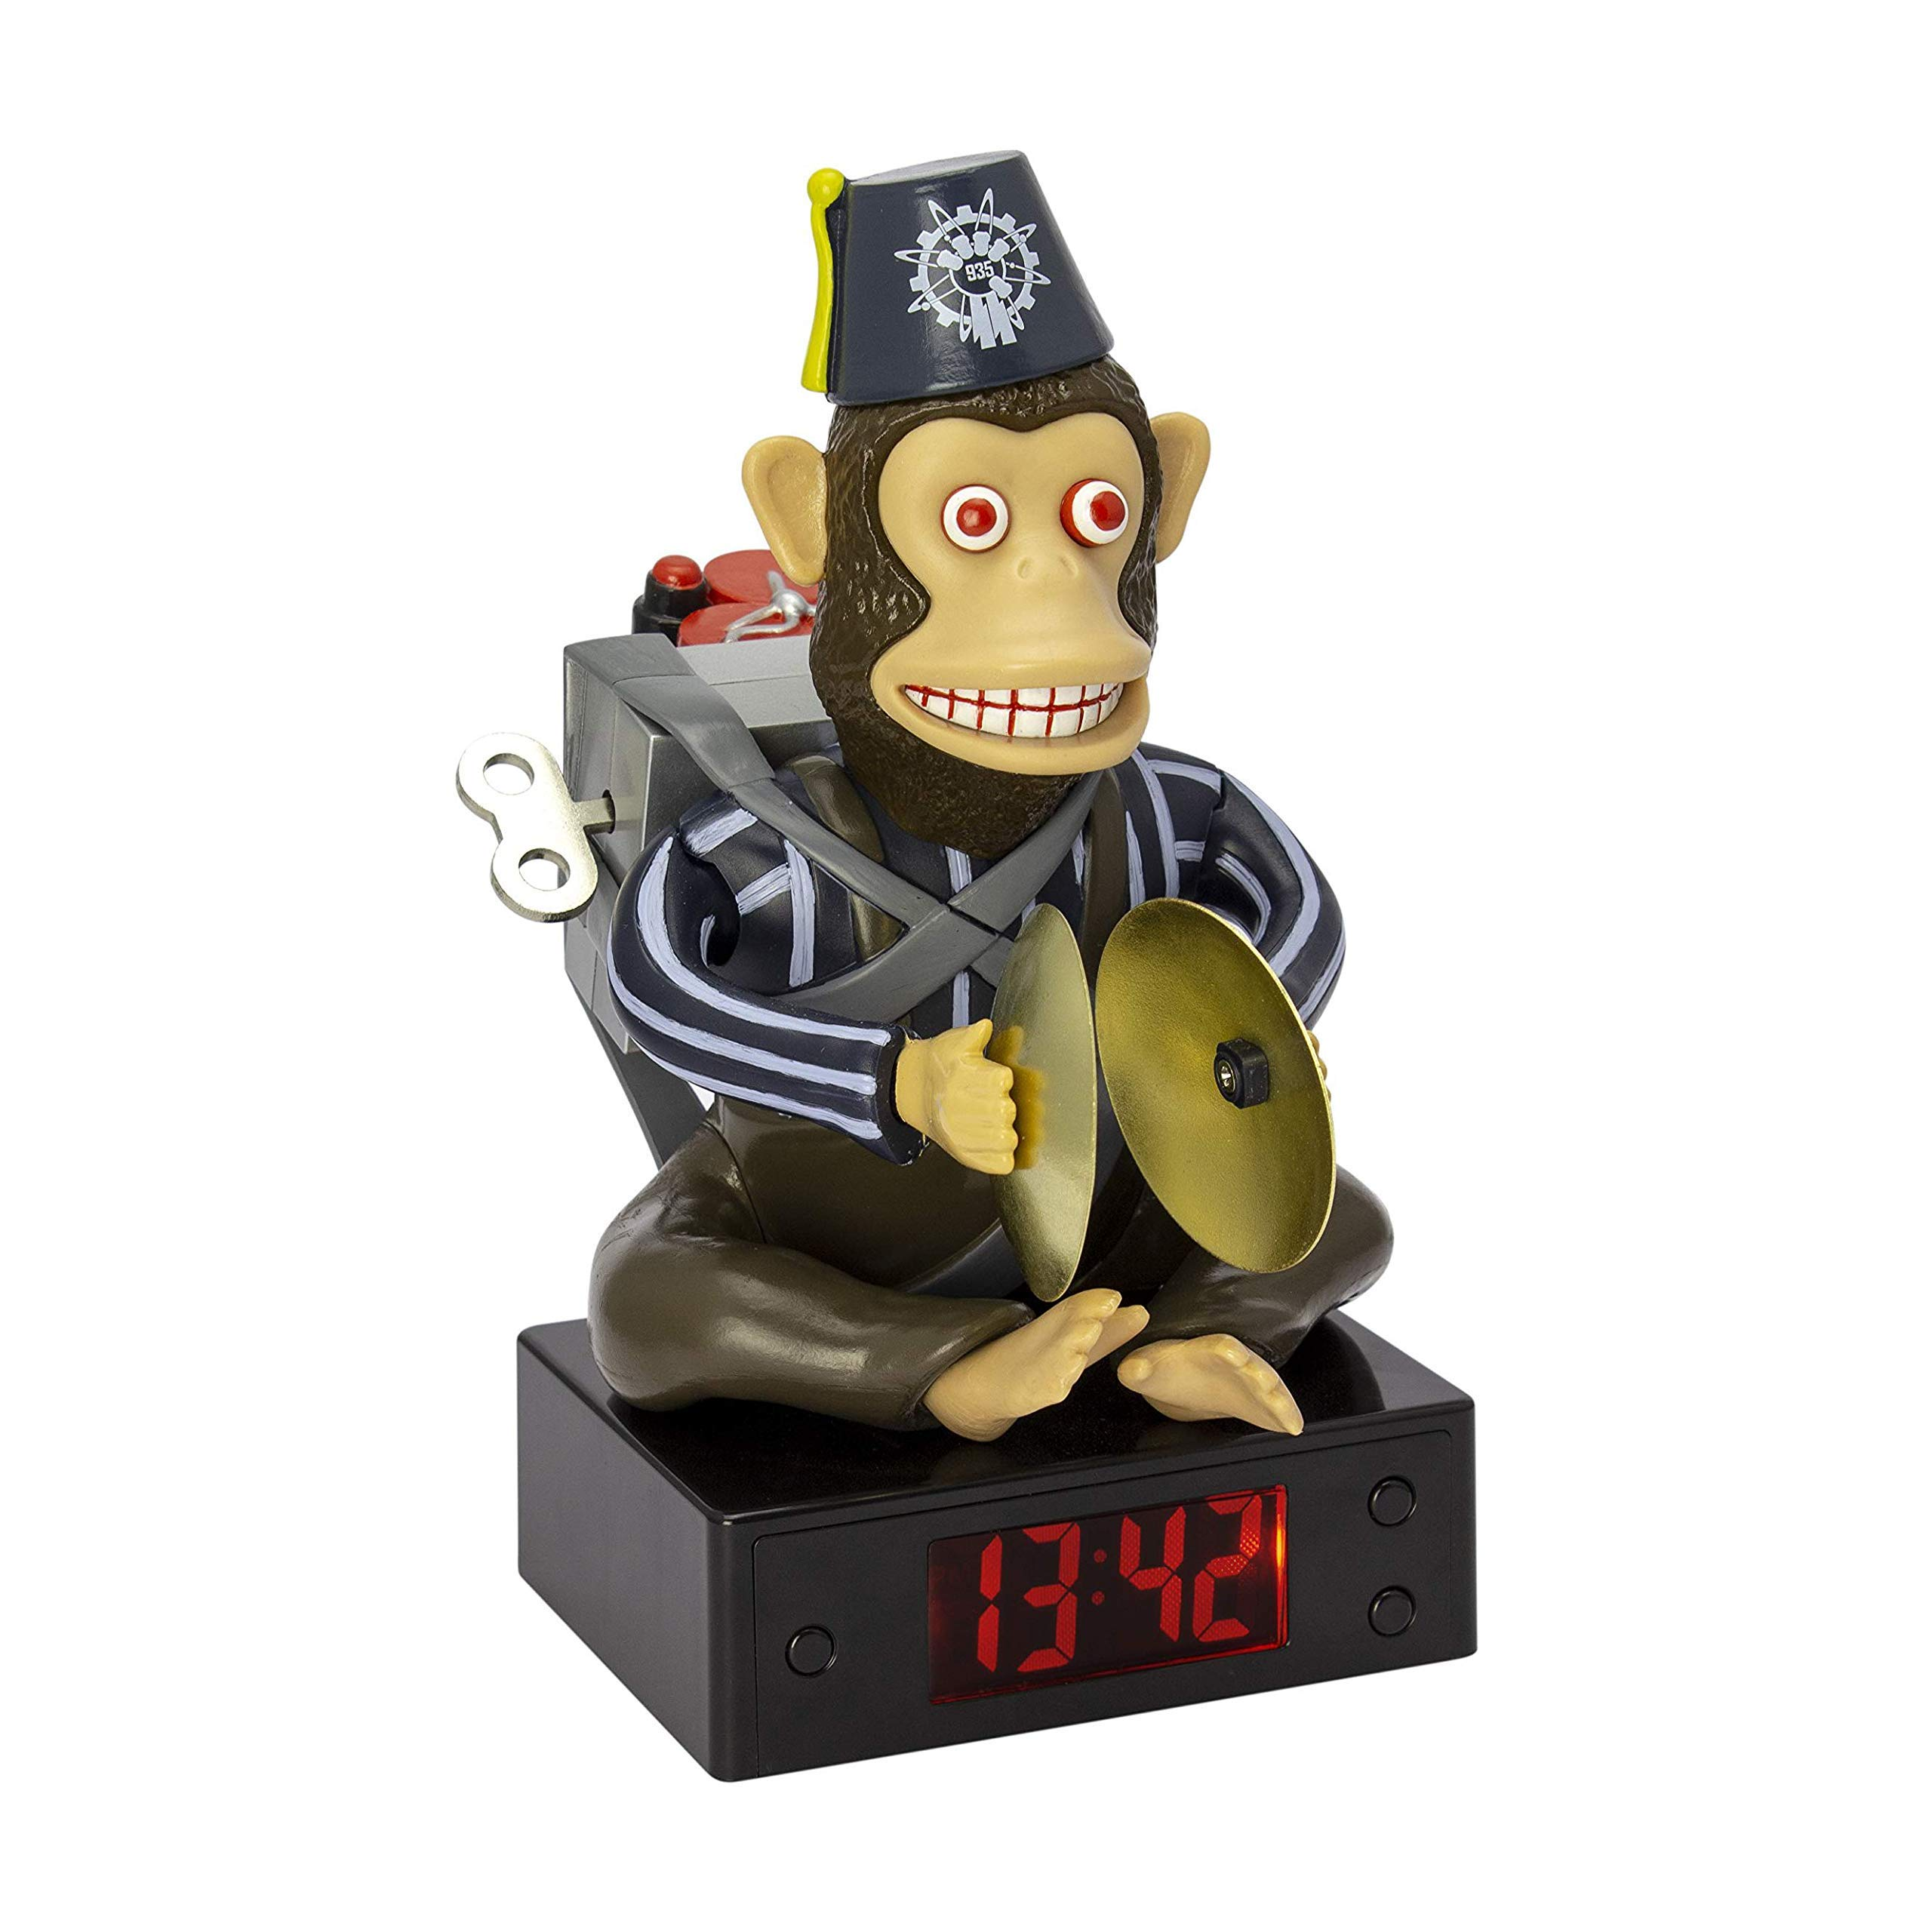 Paladone Call of Duty Monkey Bomb Alarm Clock, Officially Licensed COD Merchandise